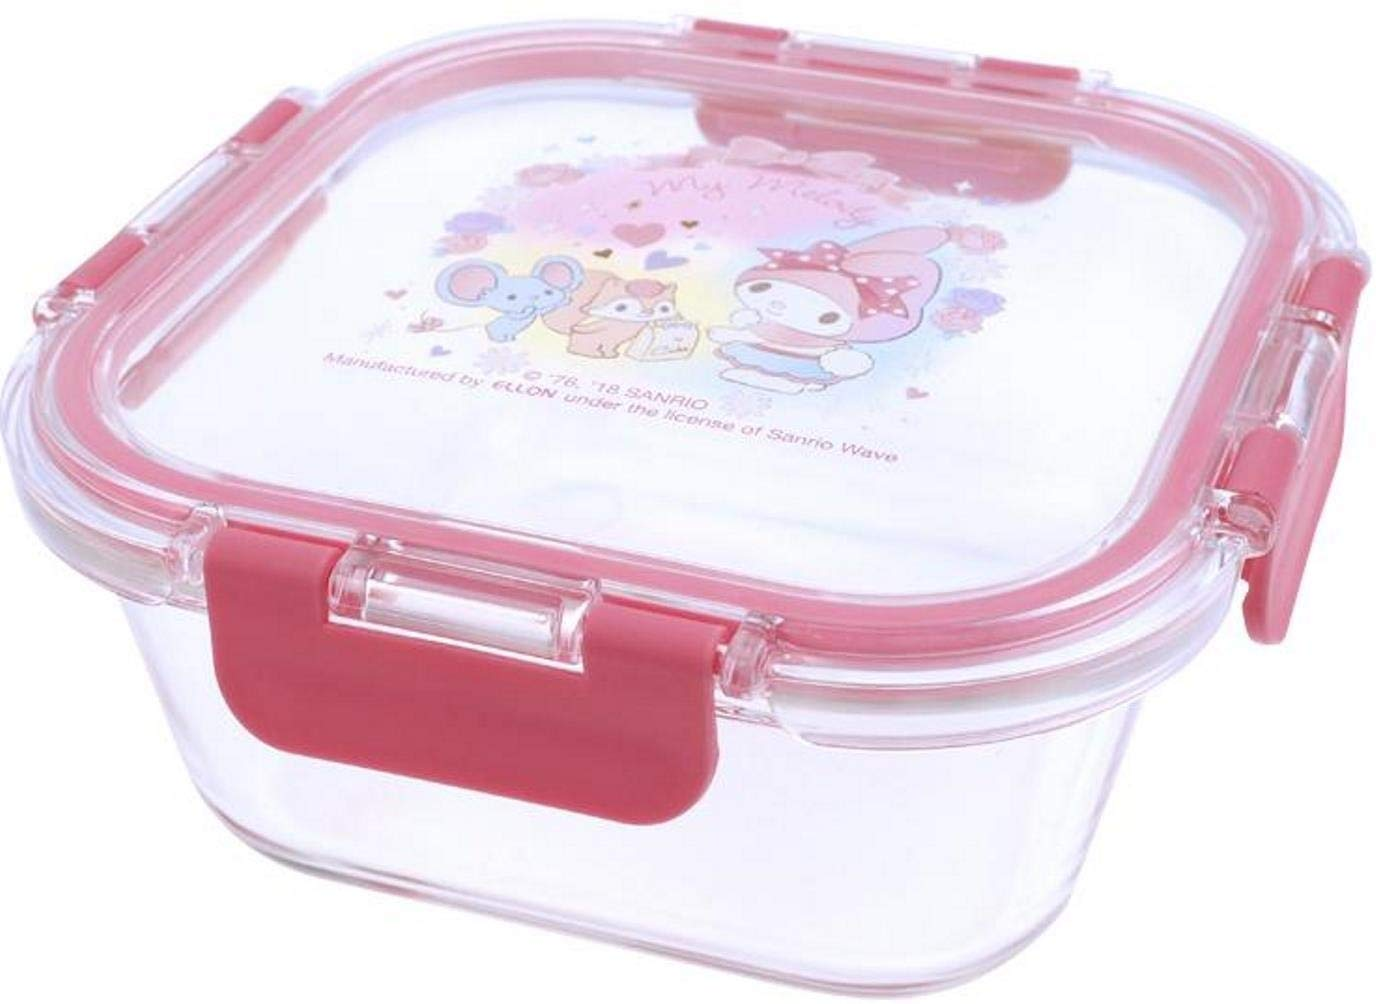 My Melody Premium LEAD FREE Glass Meal Prep Container Seal Lunch Box Microwave Oven Freezer Dishwasher Safe 800ml